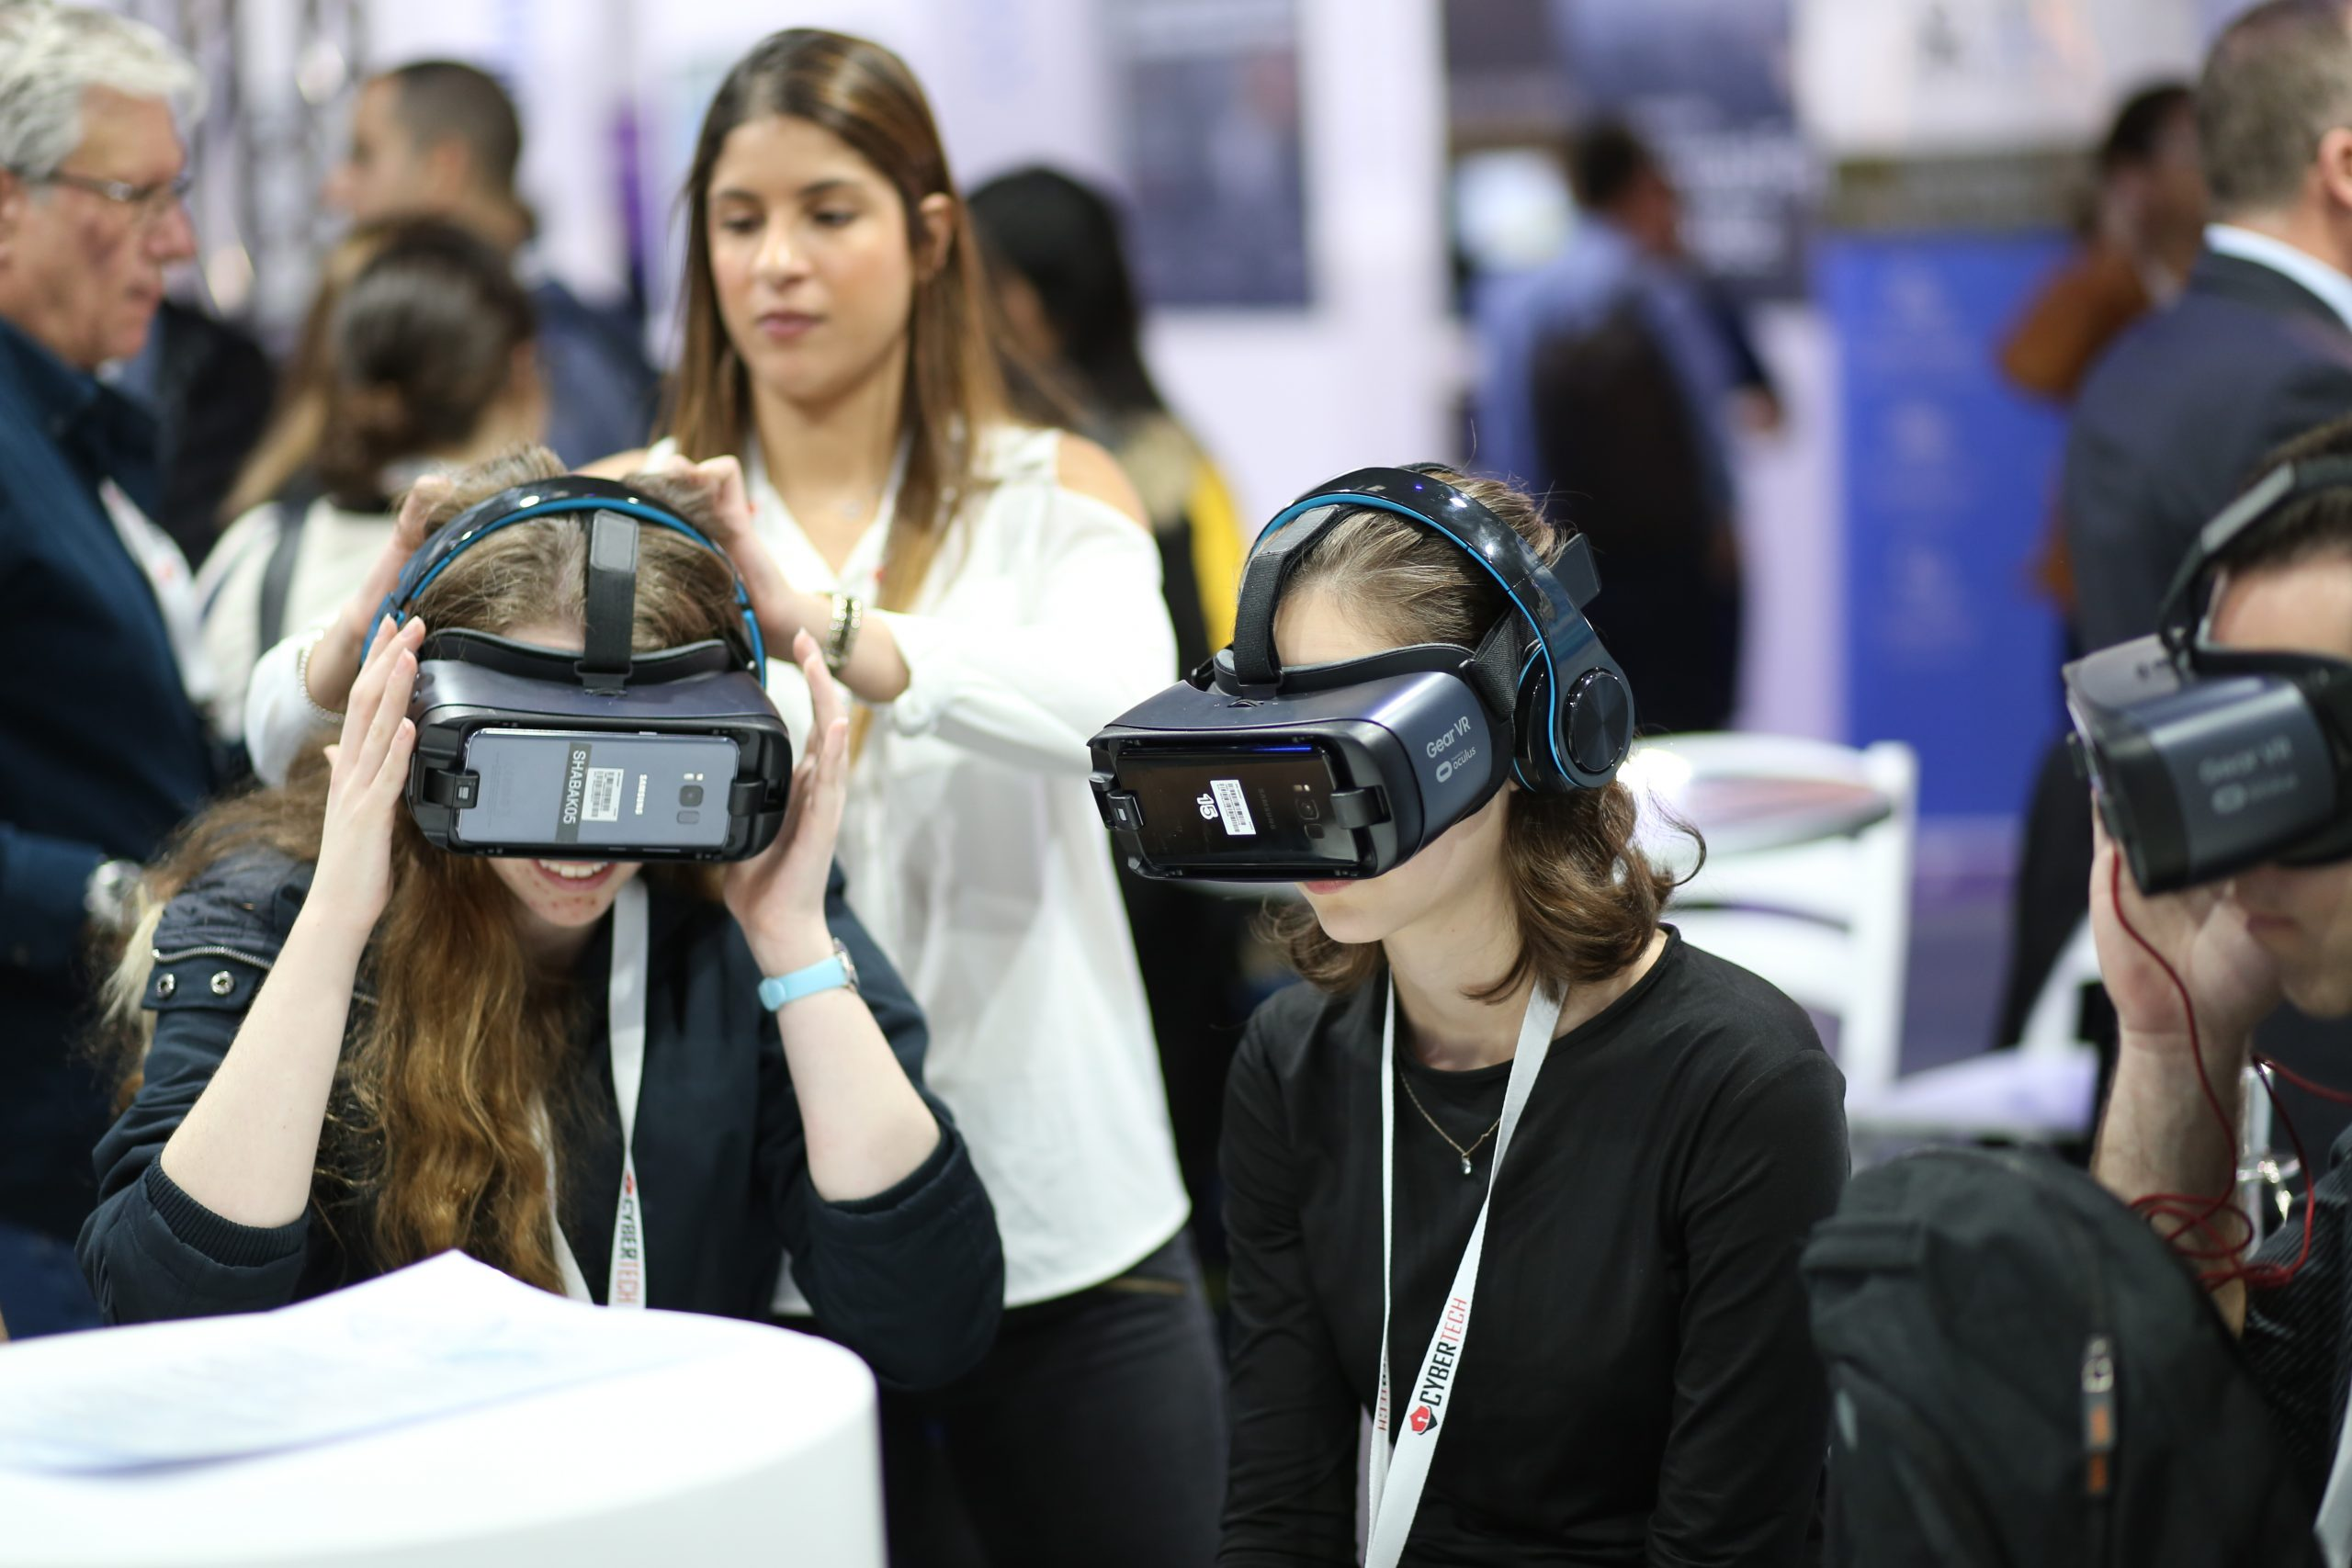 Virtual & Augmented Reality Market Analysis